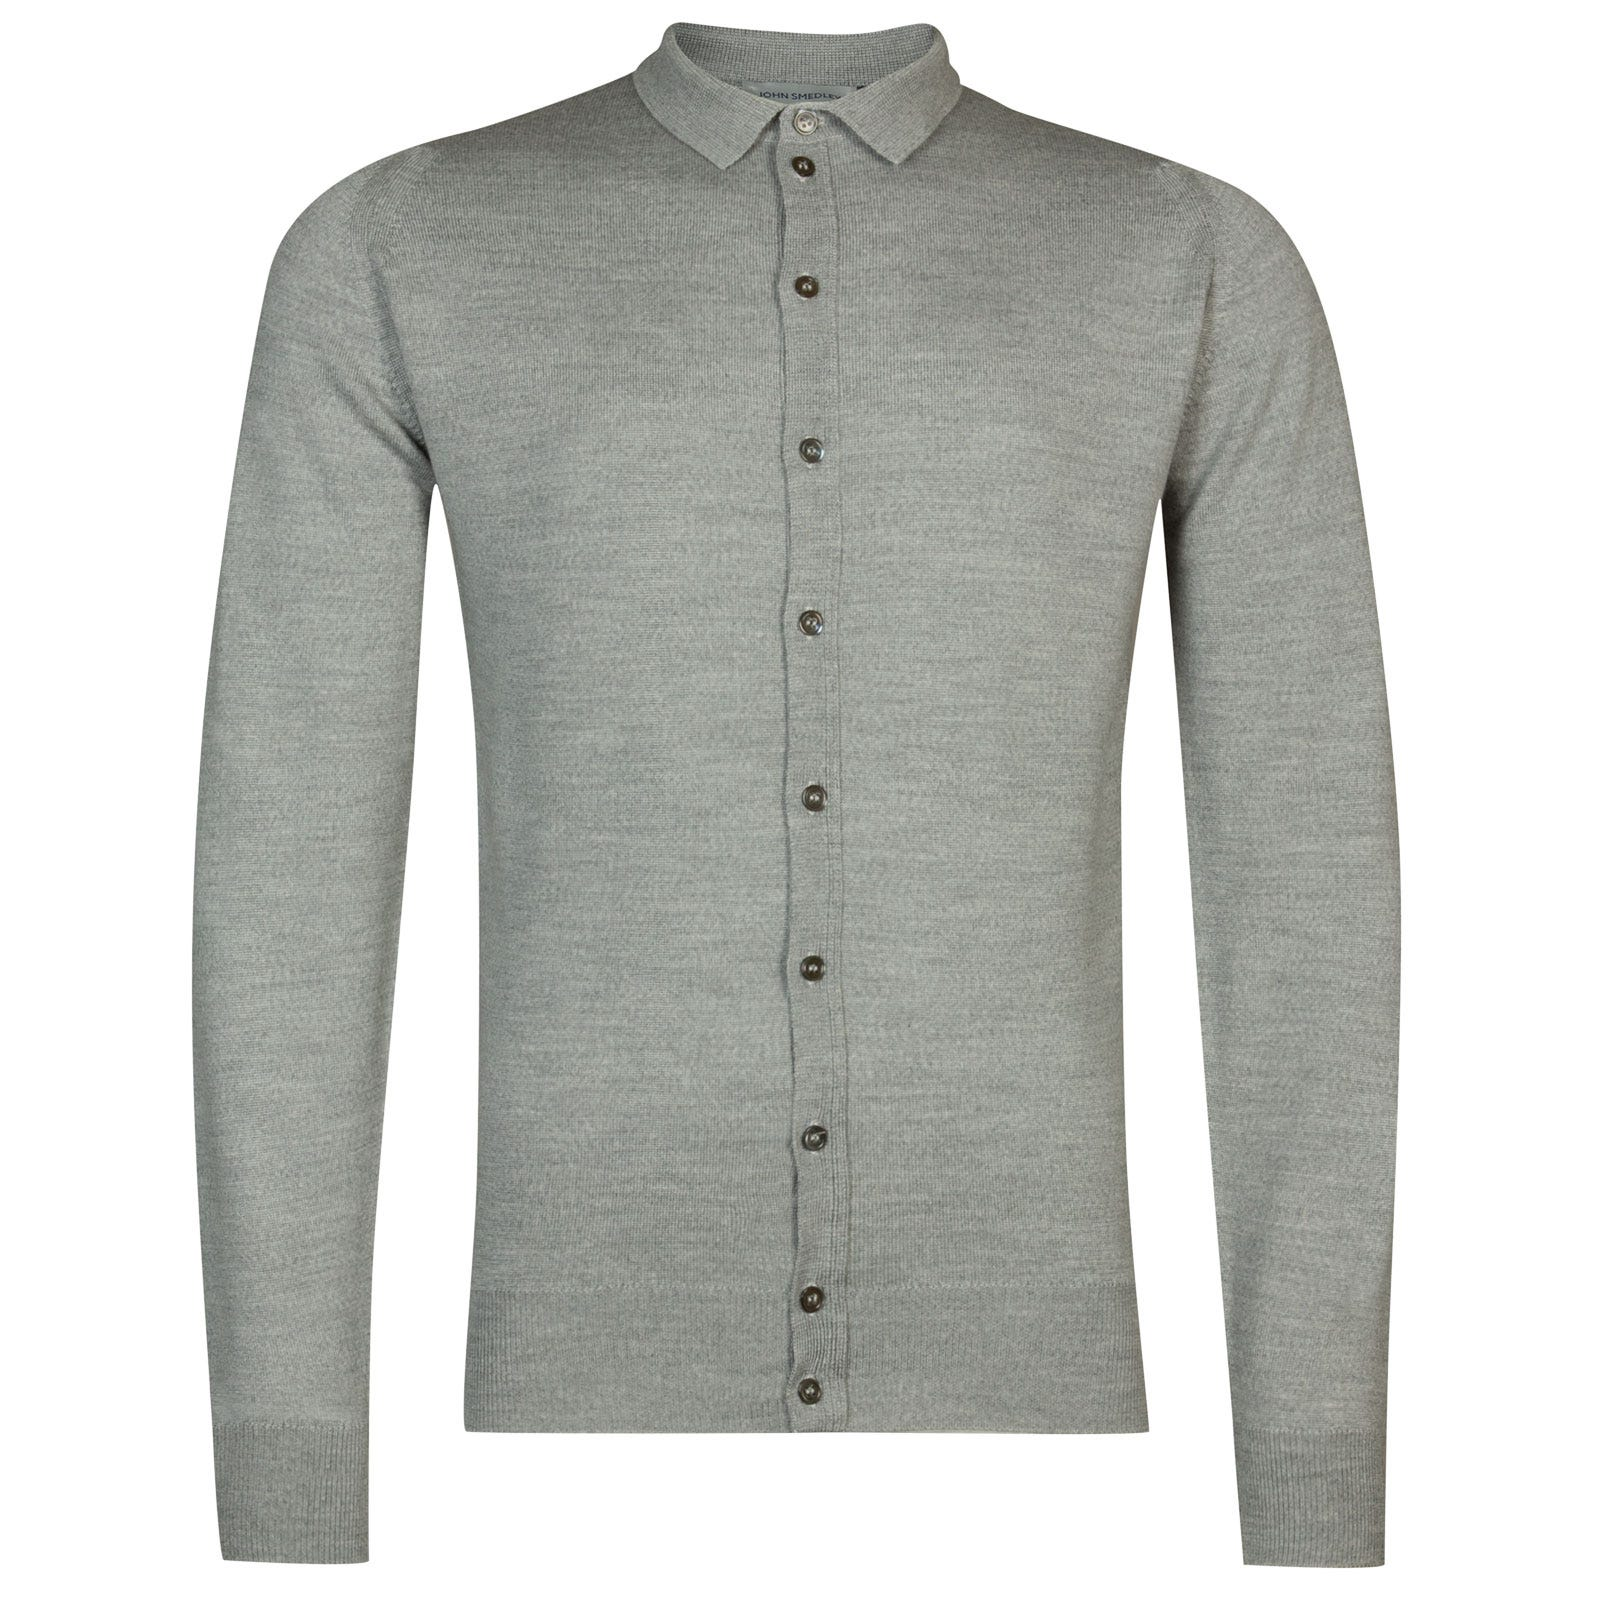 John Smedley parwish Merino Wool Shirt in Bardot Grey-S